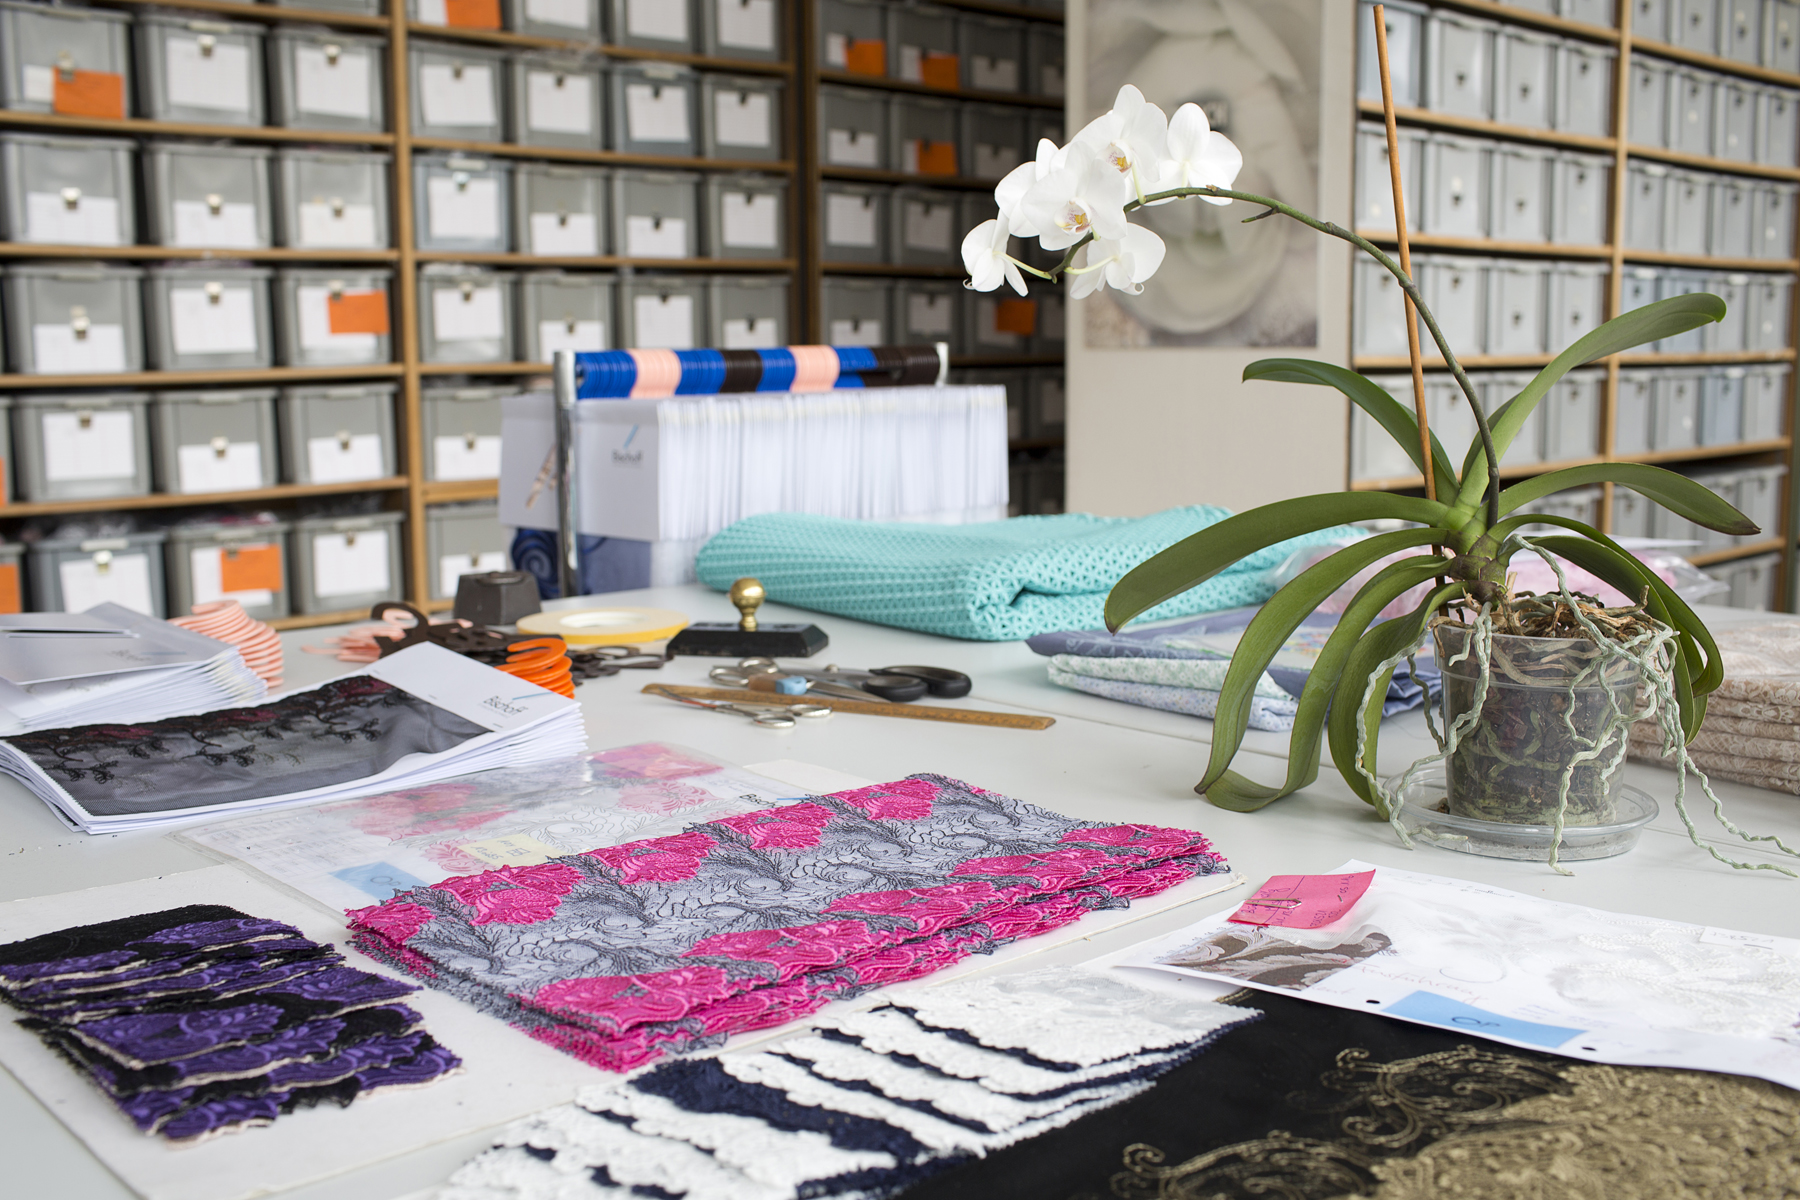 Bischoff's Embroidery Archives